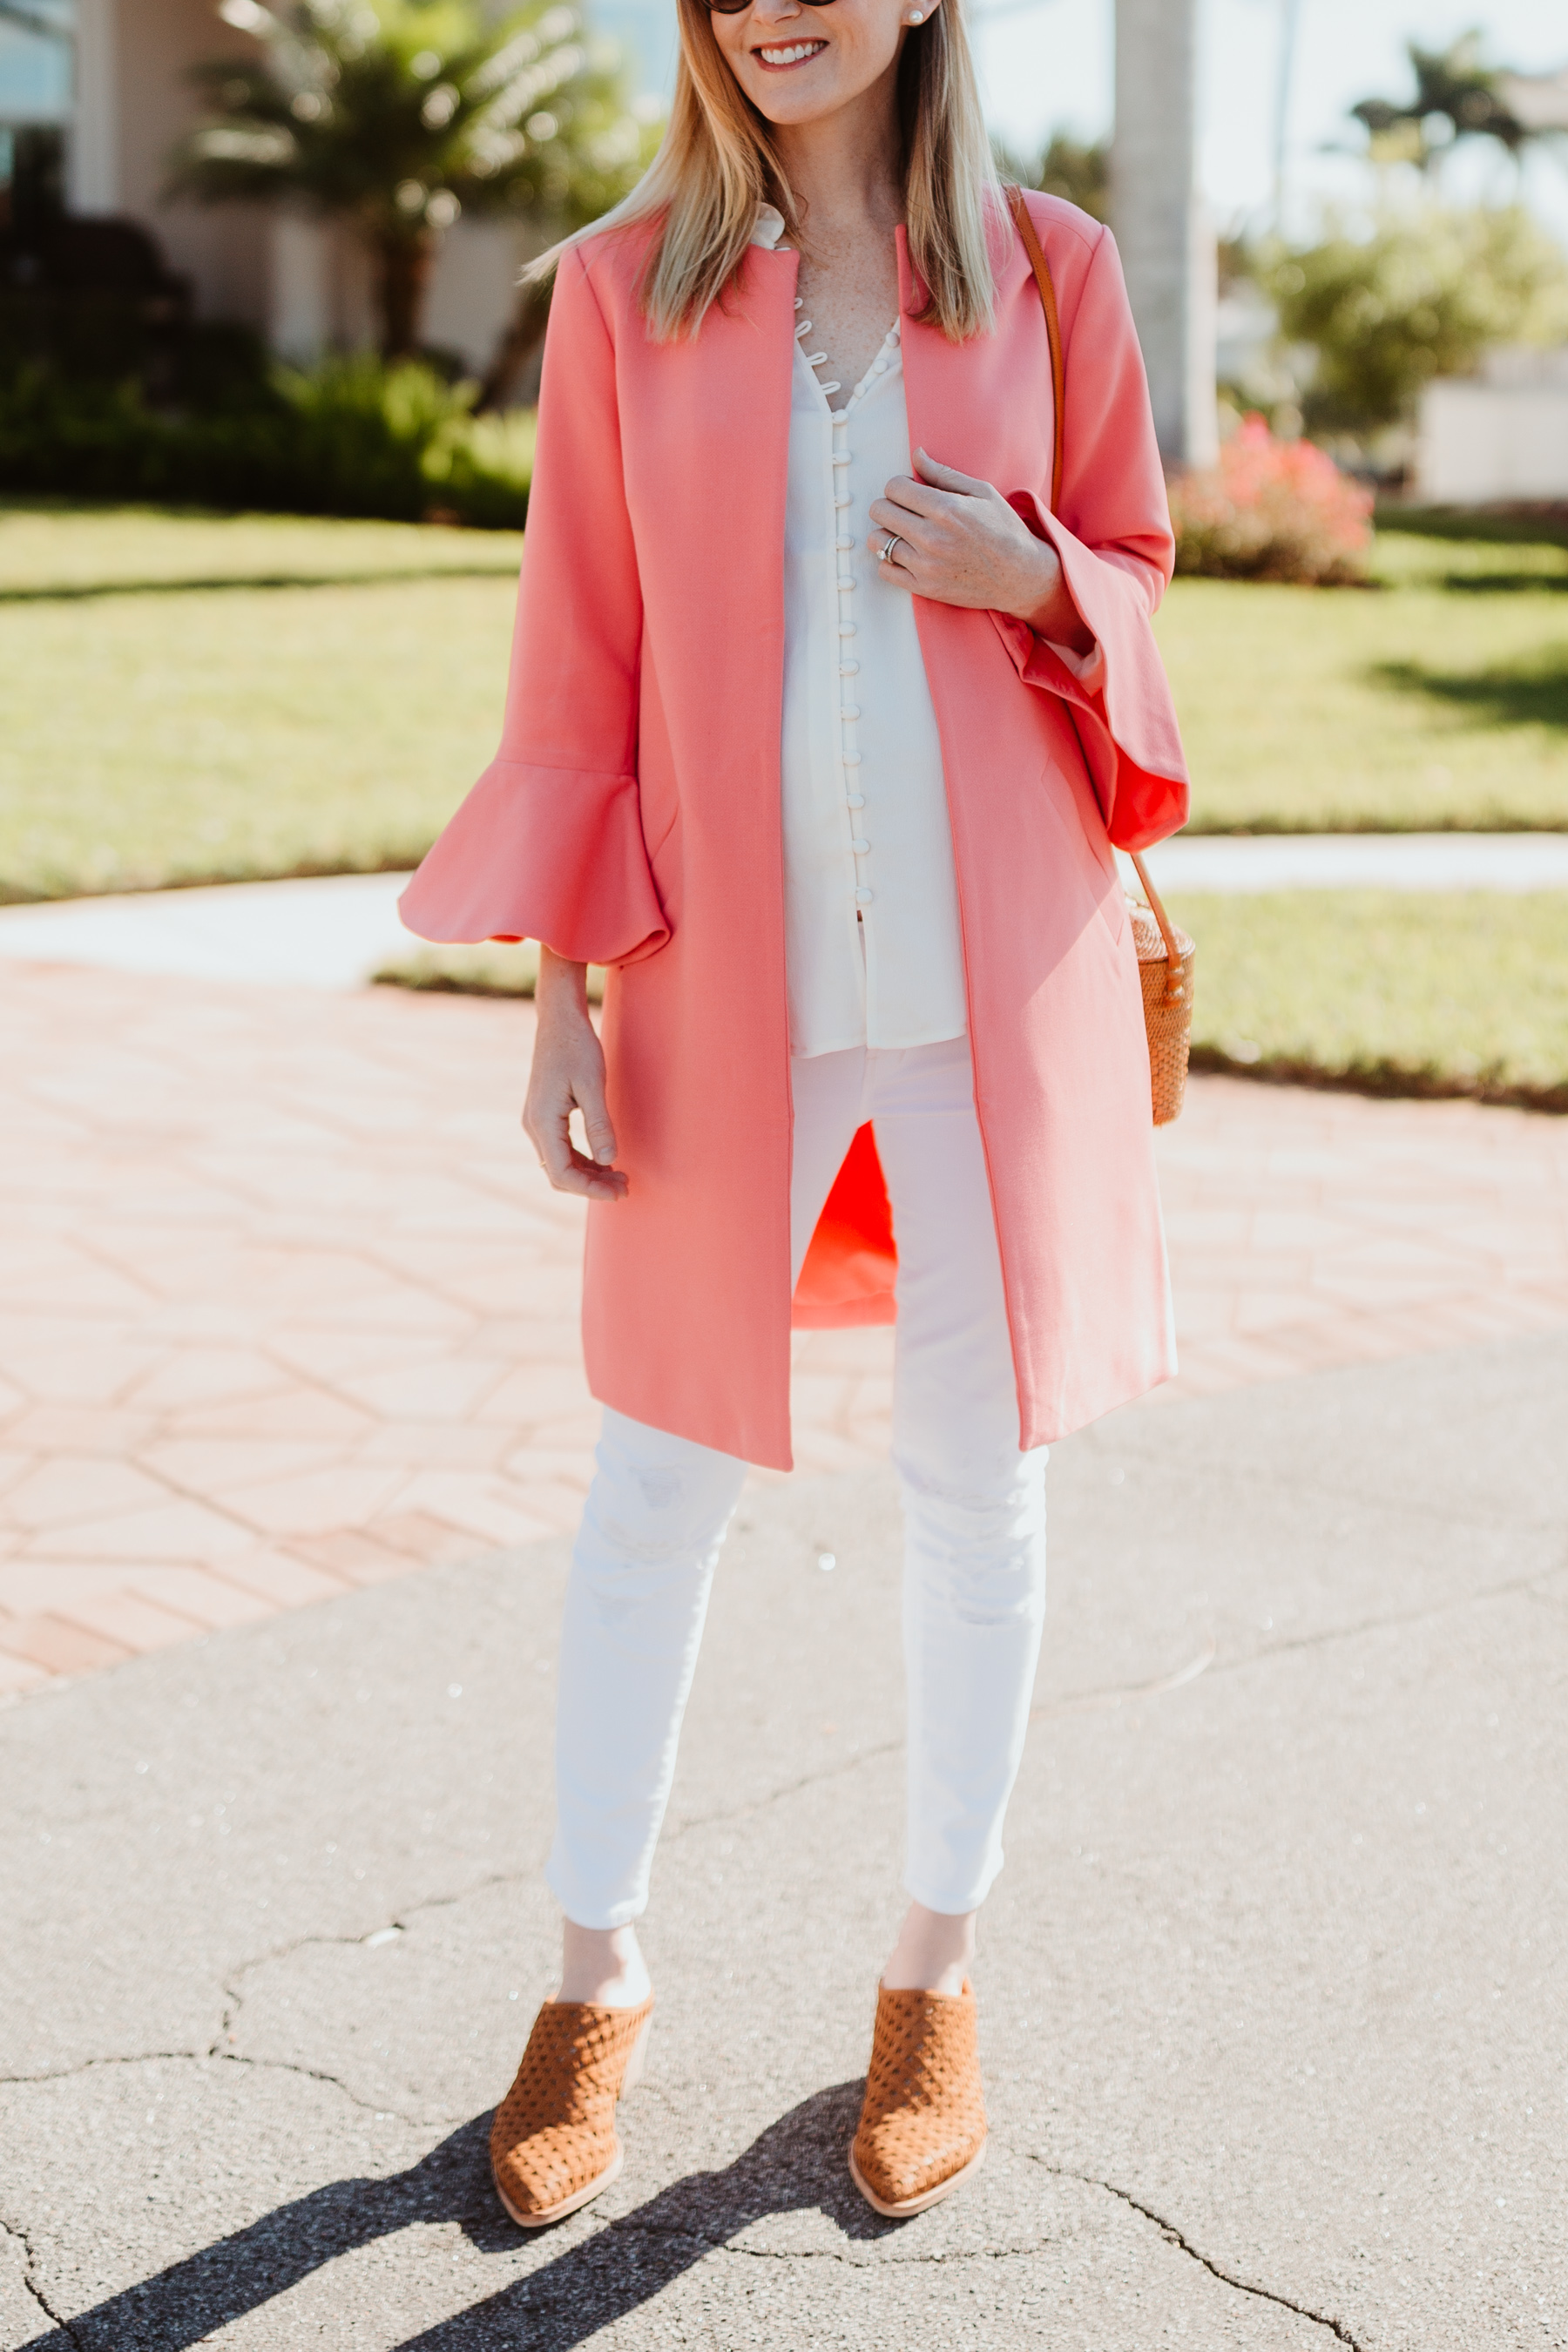 Kelly's Outfit: Pink Double Weave Flutter Sleeve Coat / Ruffled Button Blouse / Dolce Vita Sayer Mules / Newer Woven Crossbody Bag / Maternity Jeans